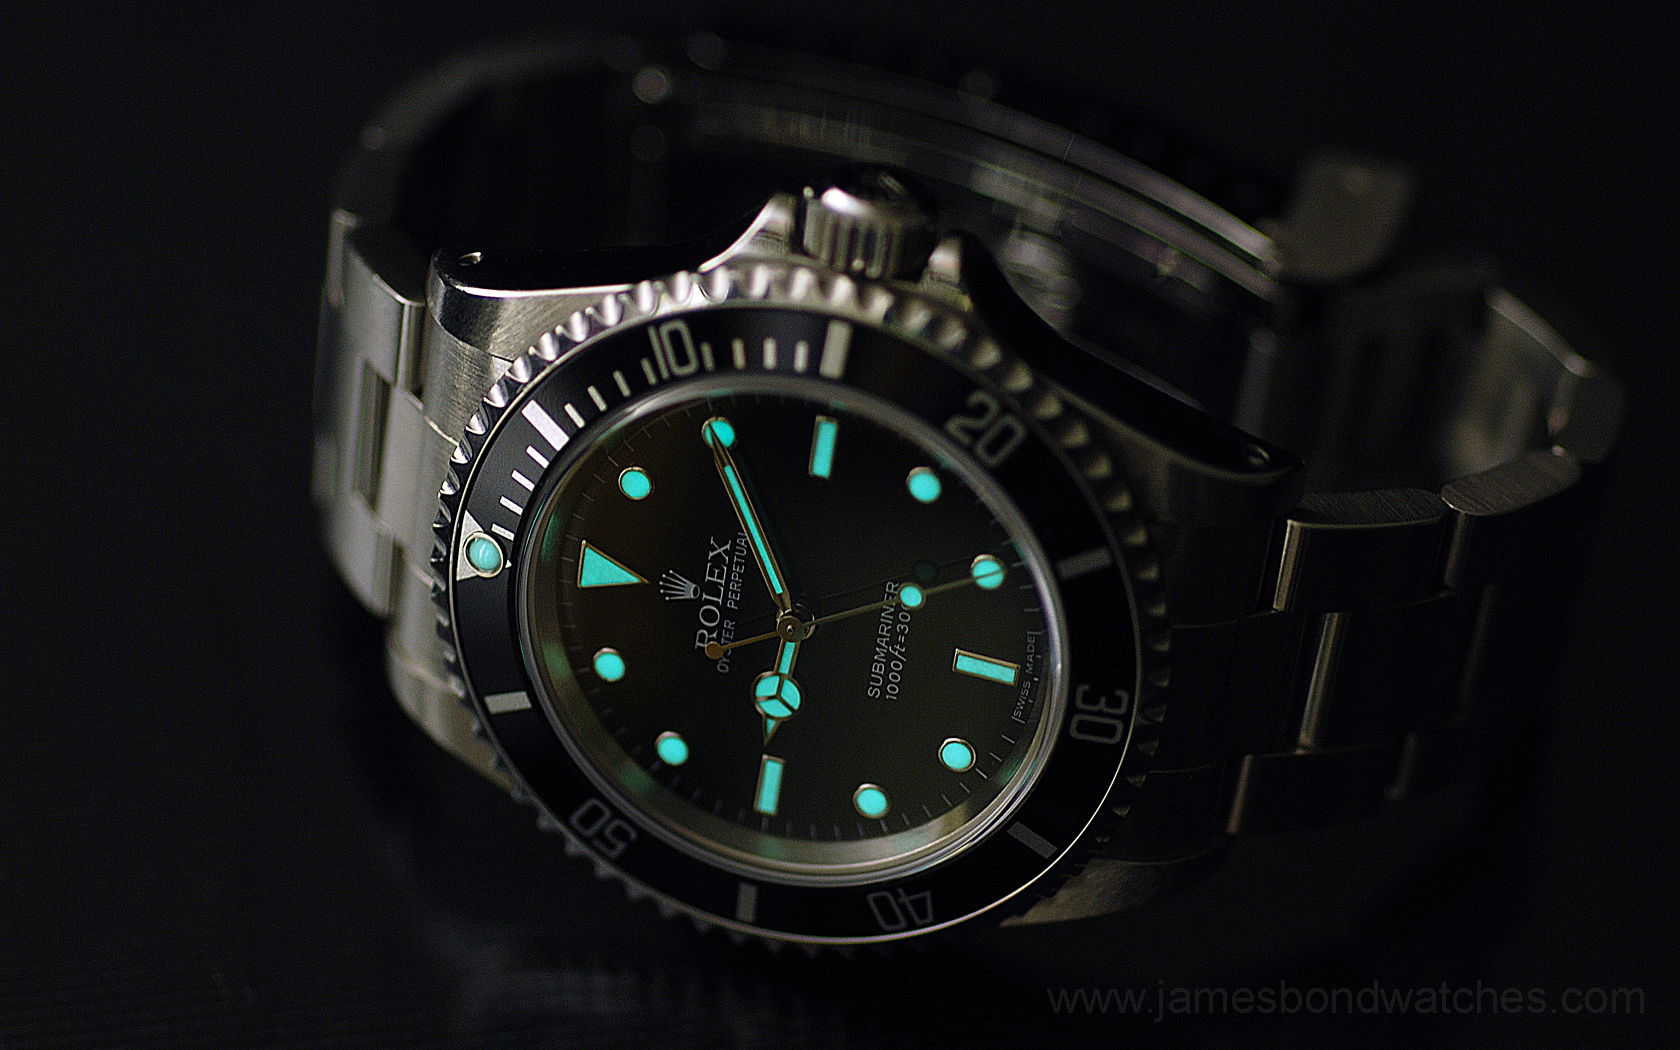 Rolex Submariner Images And Wallpapers James Bond Watches